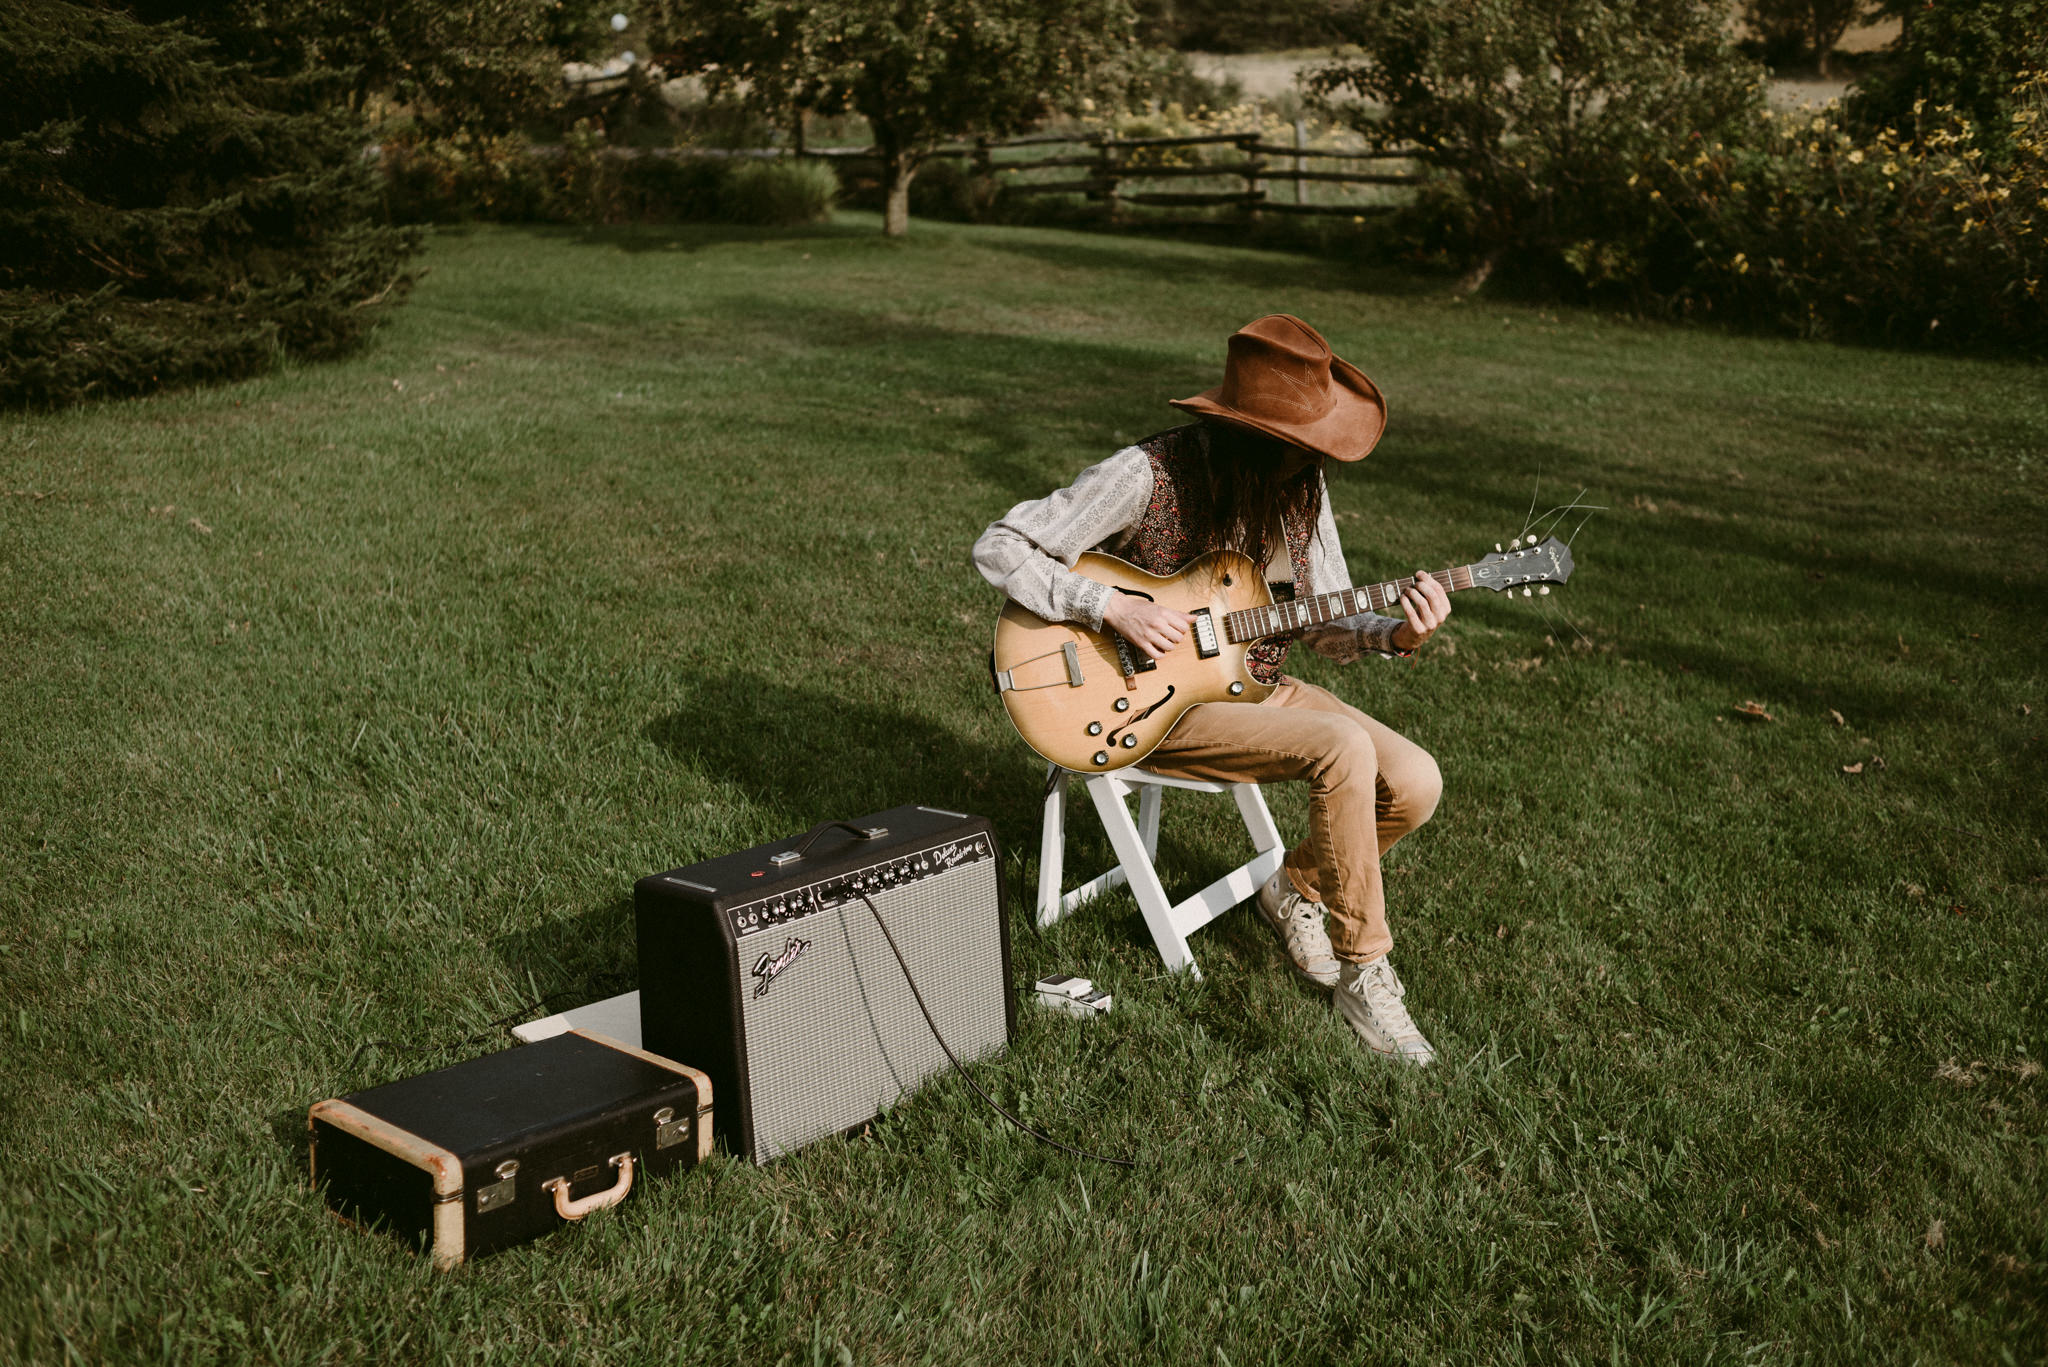 Hipster musician playing guitar at outdoor backyard wedding ceremony